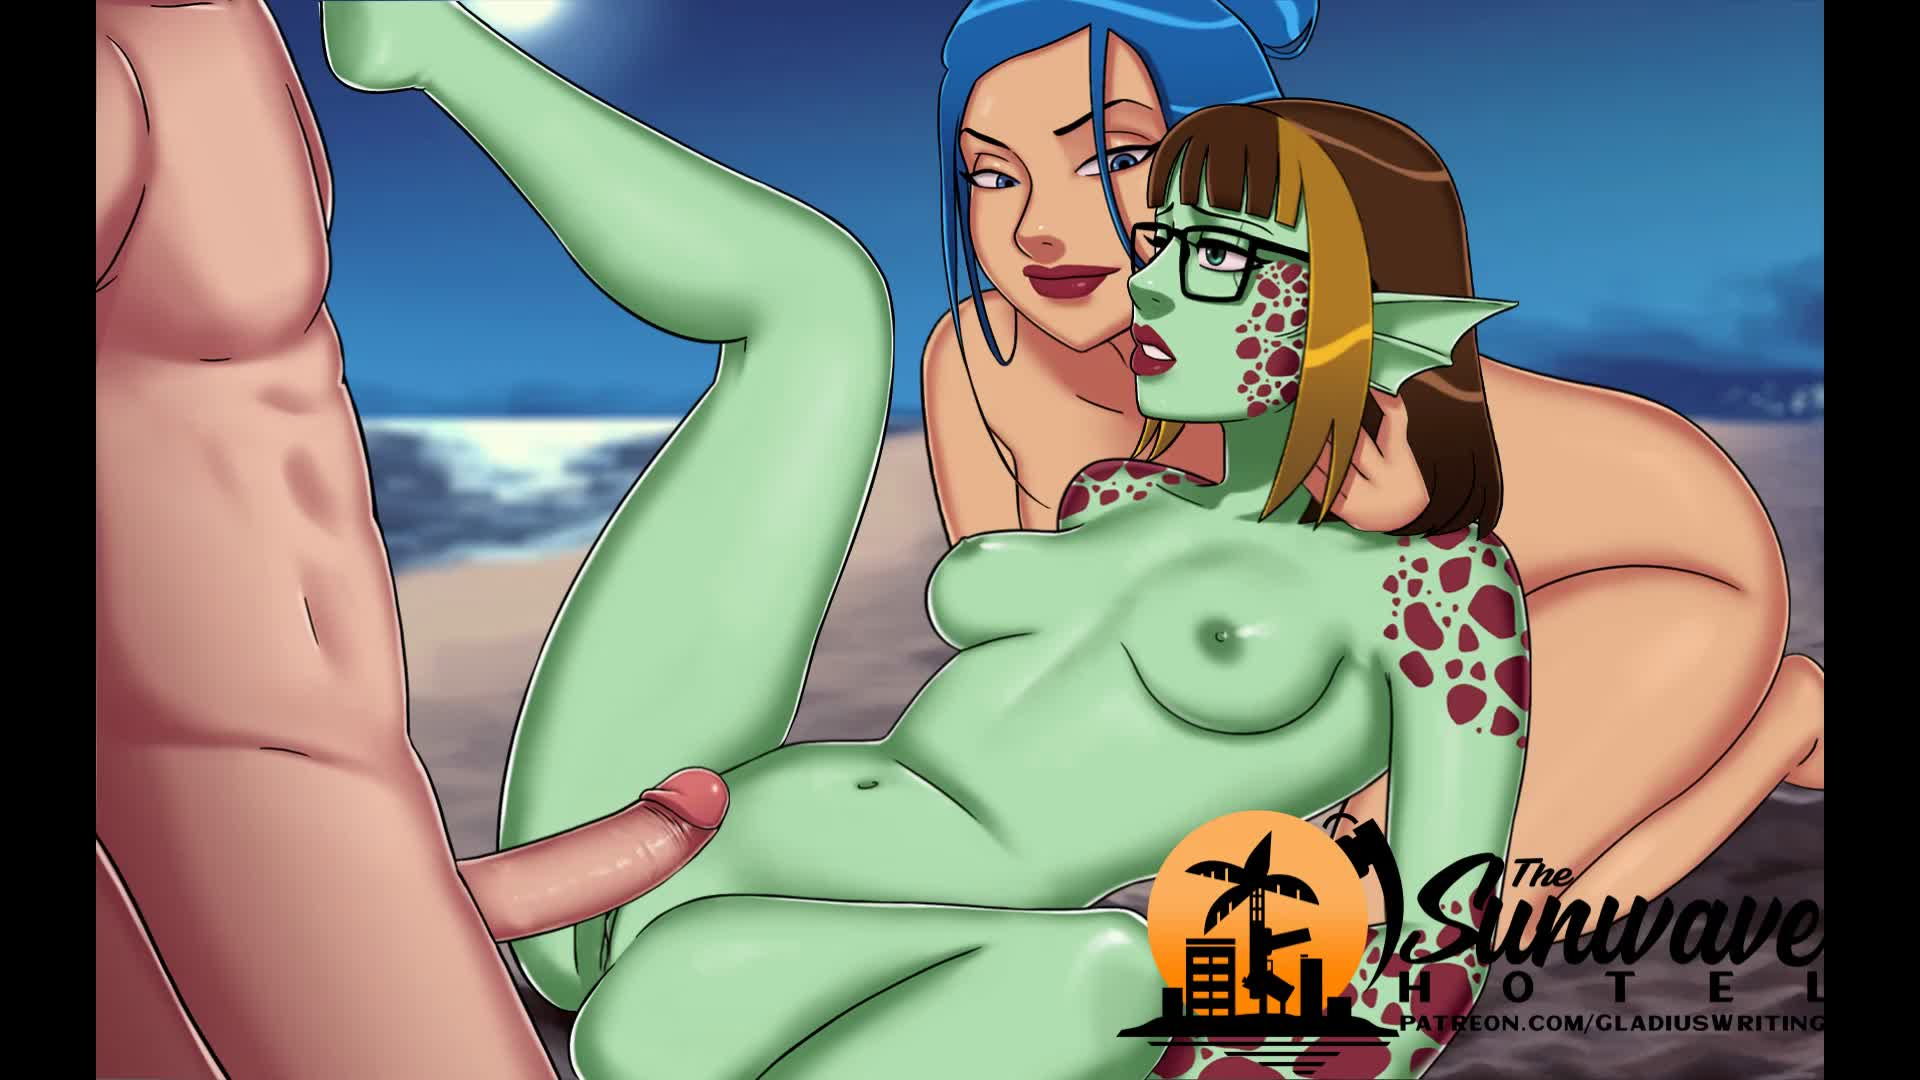 Sex on the beach with Alexis (Turtlegirl) and Kuhno (Anon) [Sunwave Hotel]